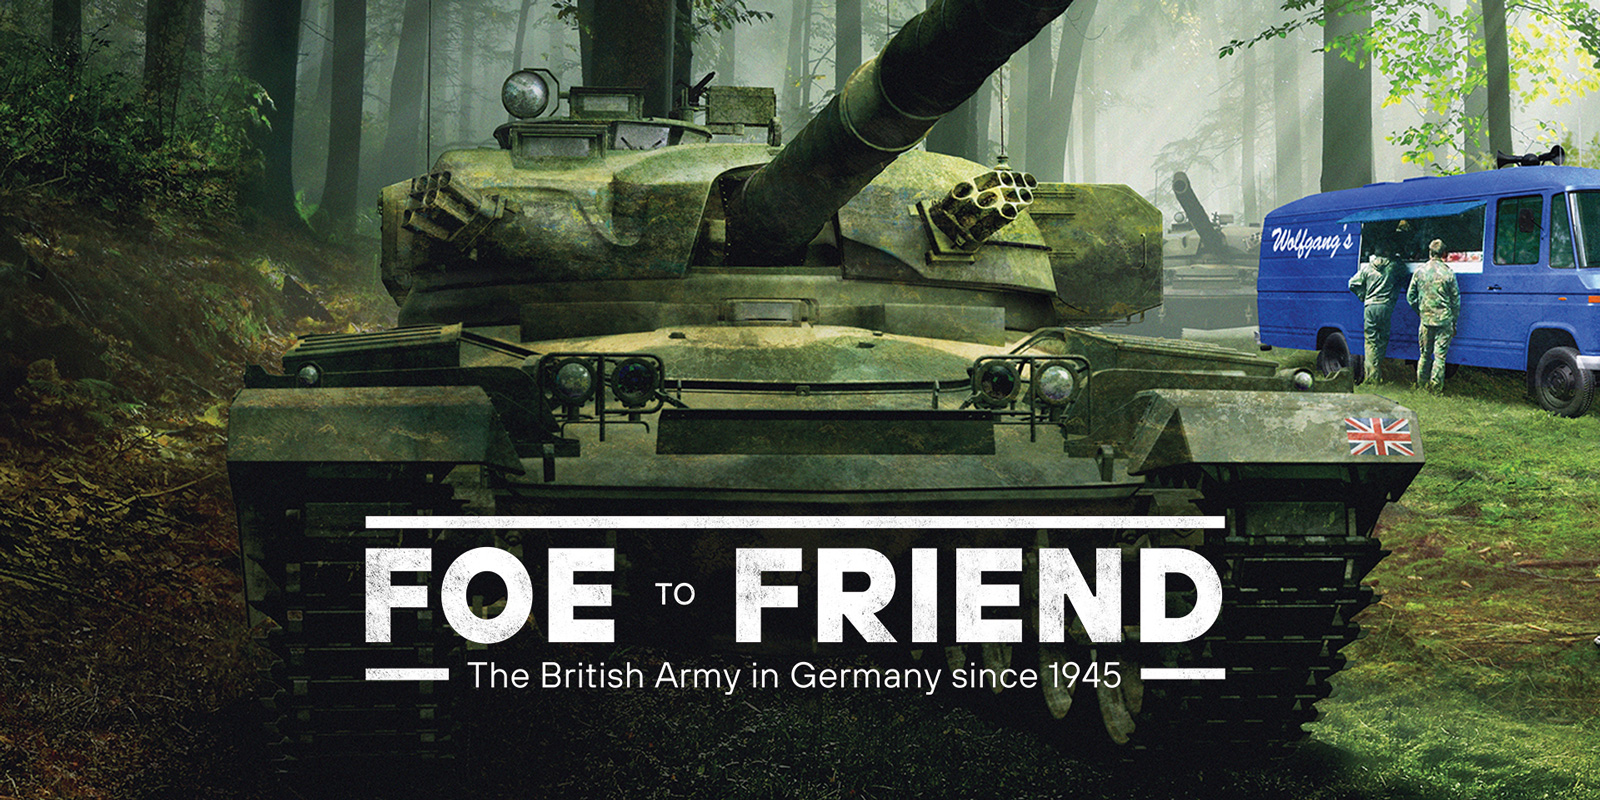 Foe to Friend: The British Army in Germany since 1945